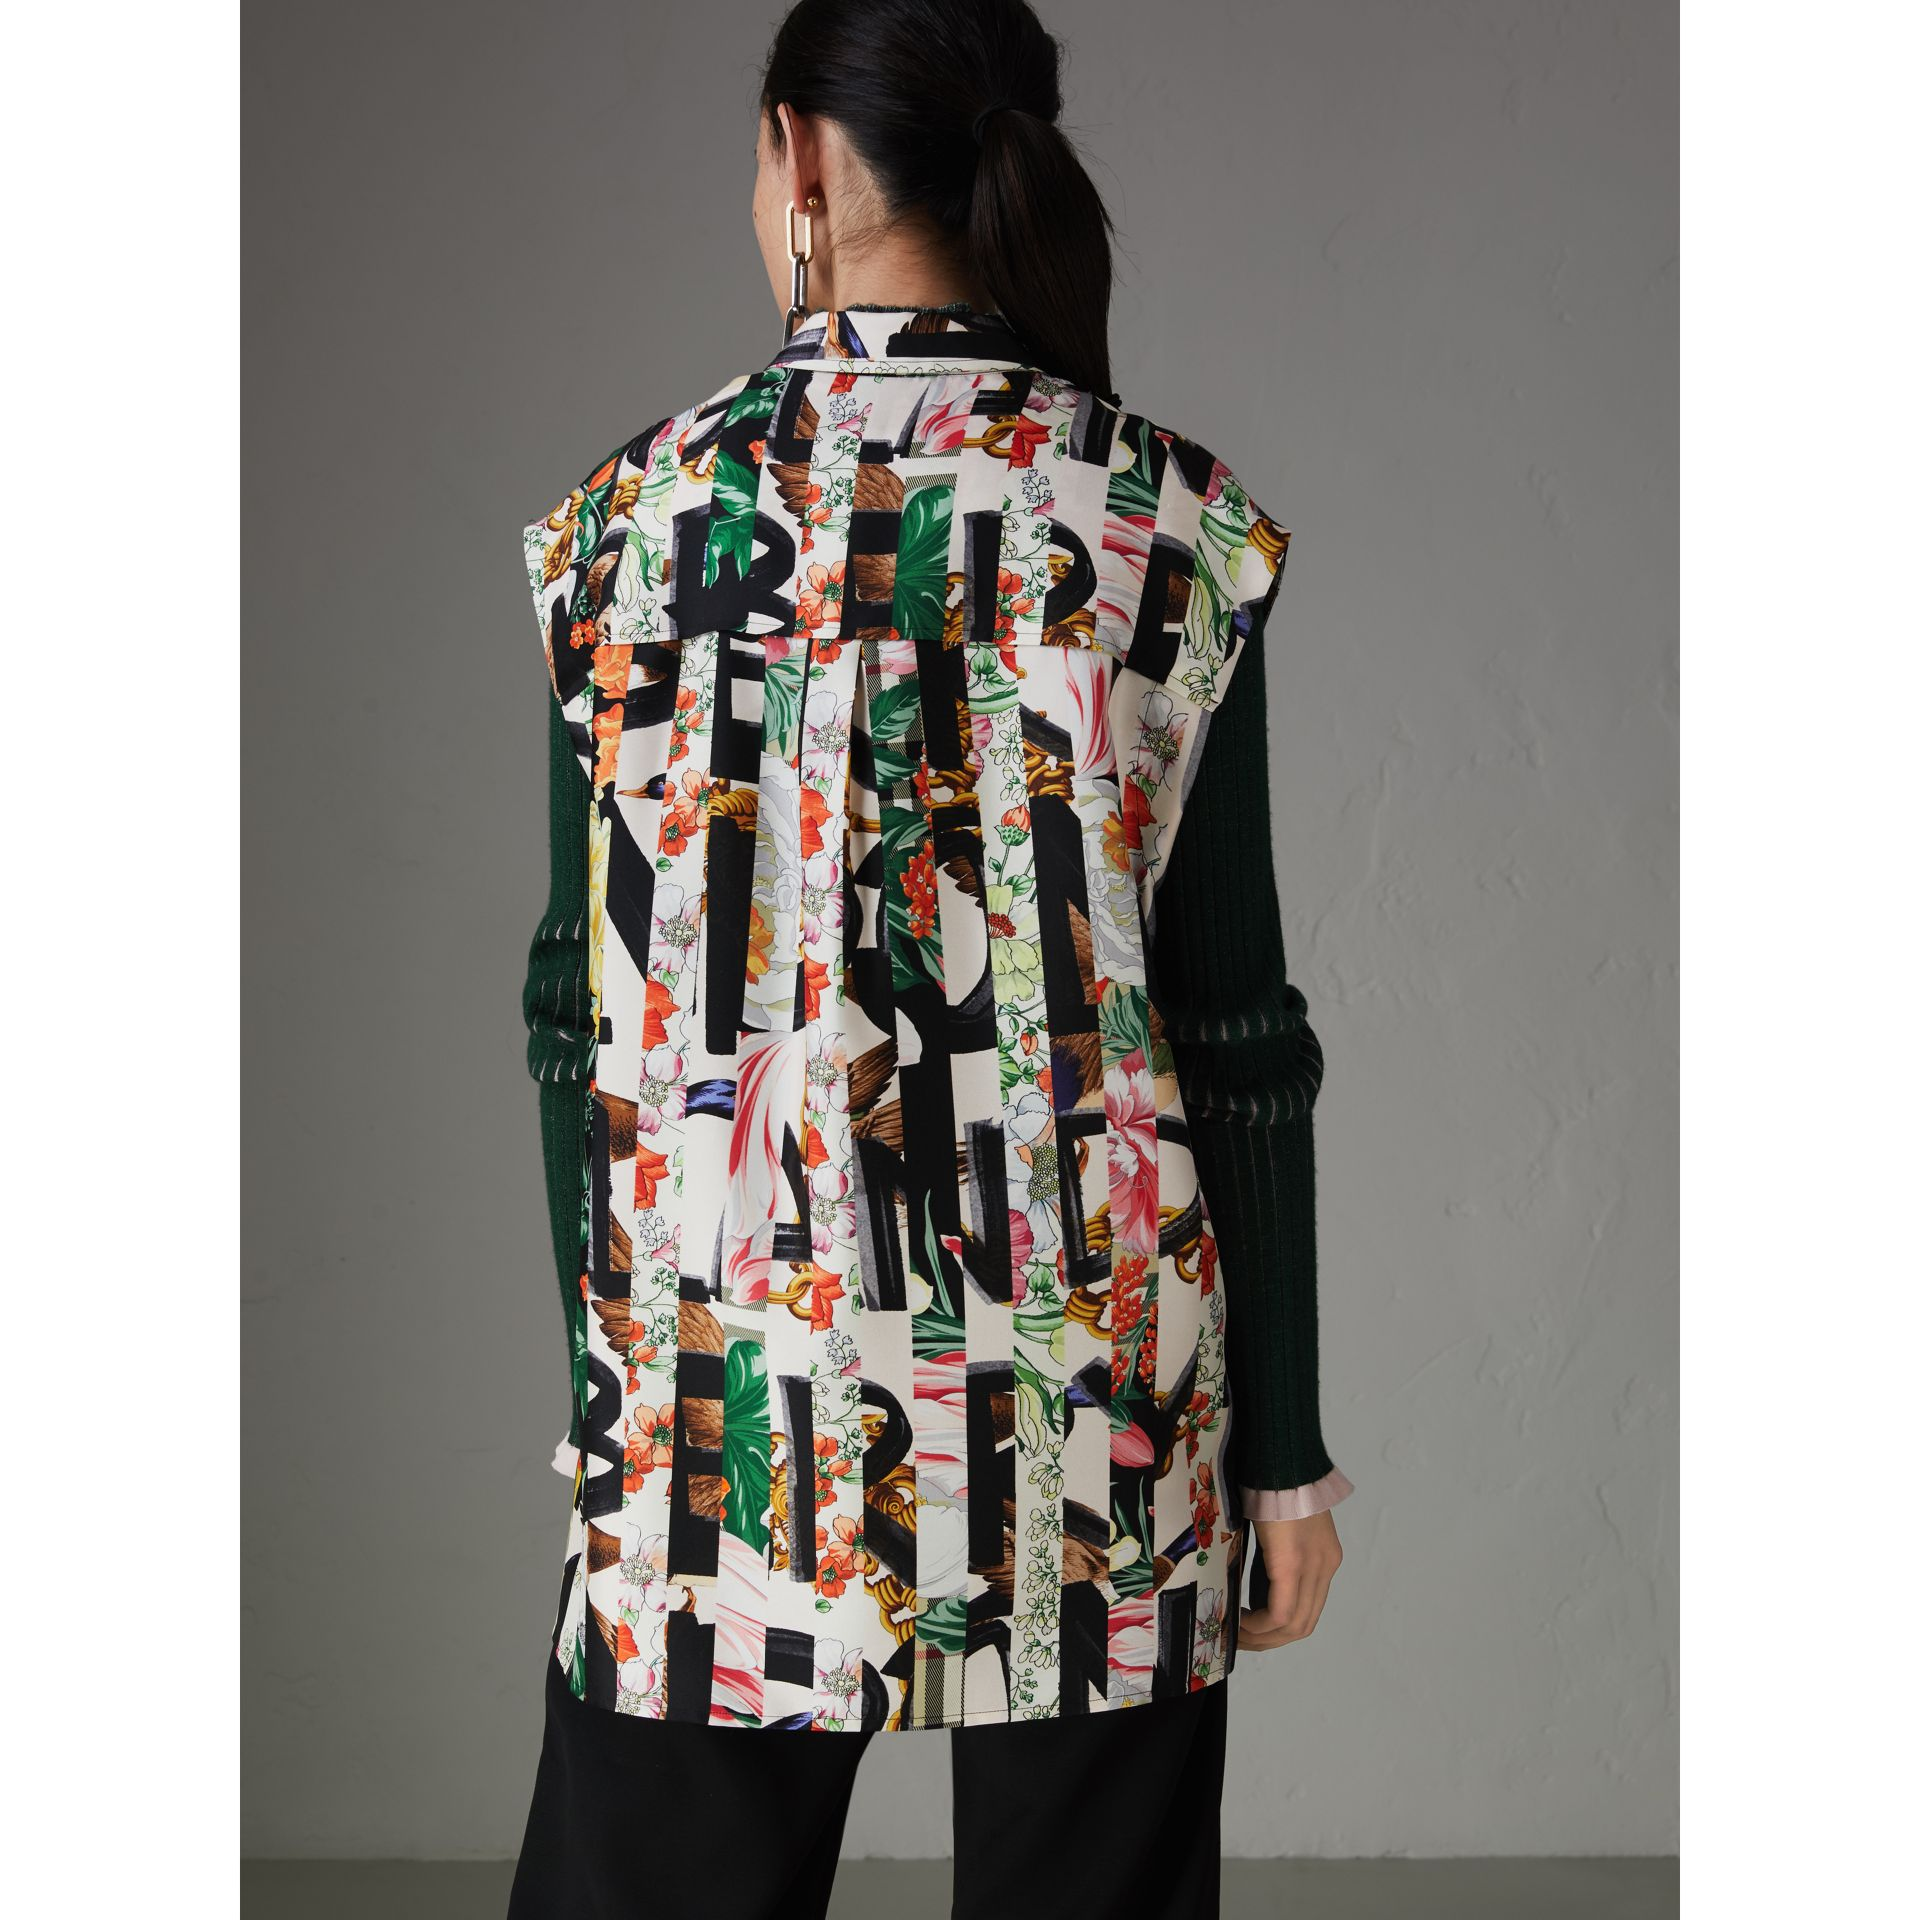 Archive Scarf Print Silk Sleeveless Shirt in Multicolour - Women | Burberry Canada - gallery image 2